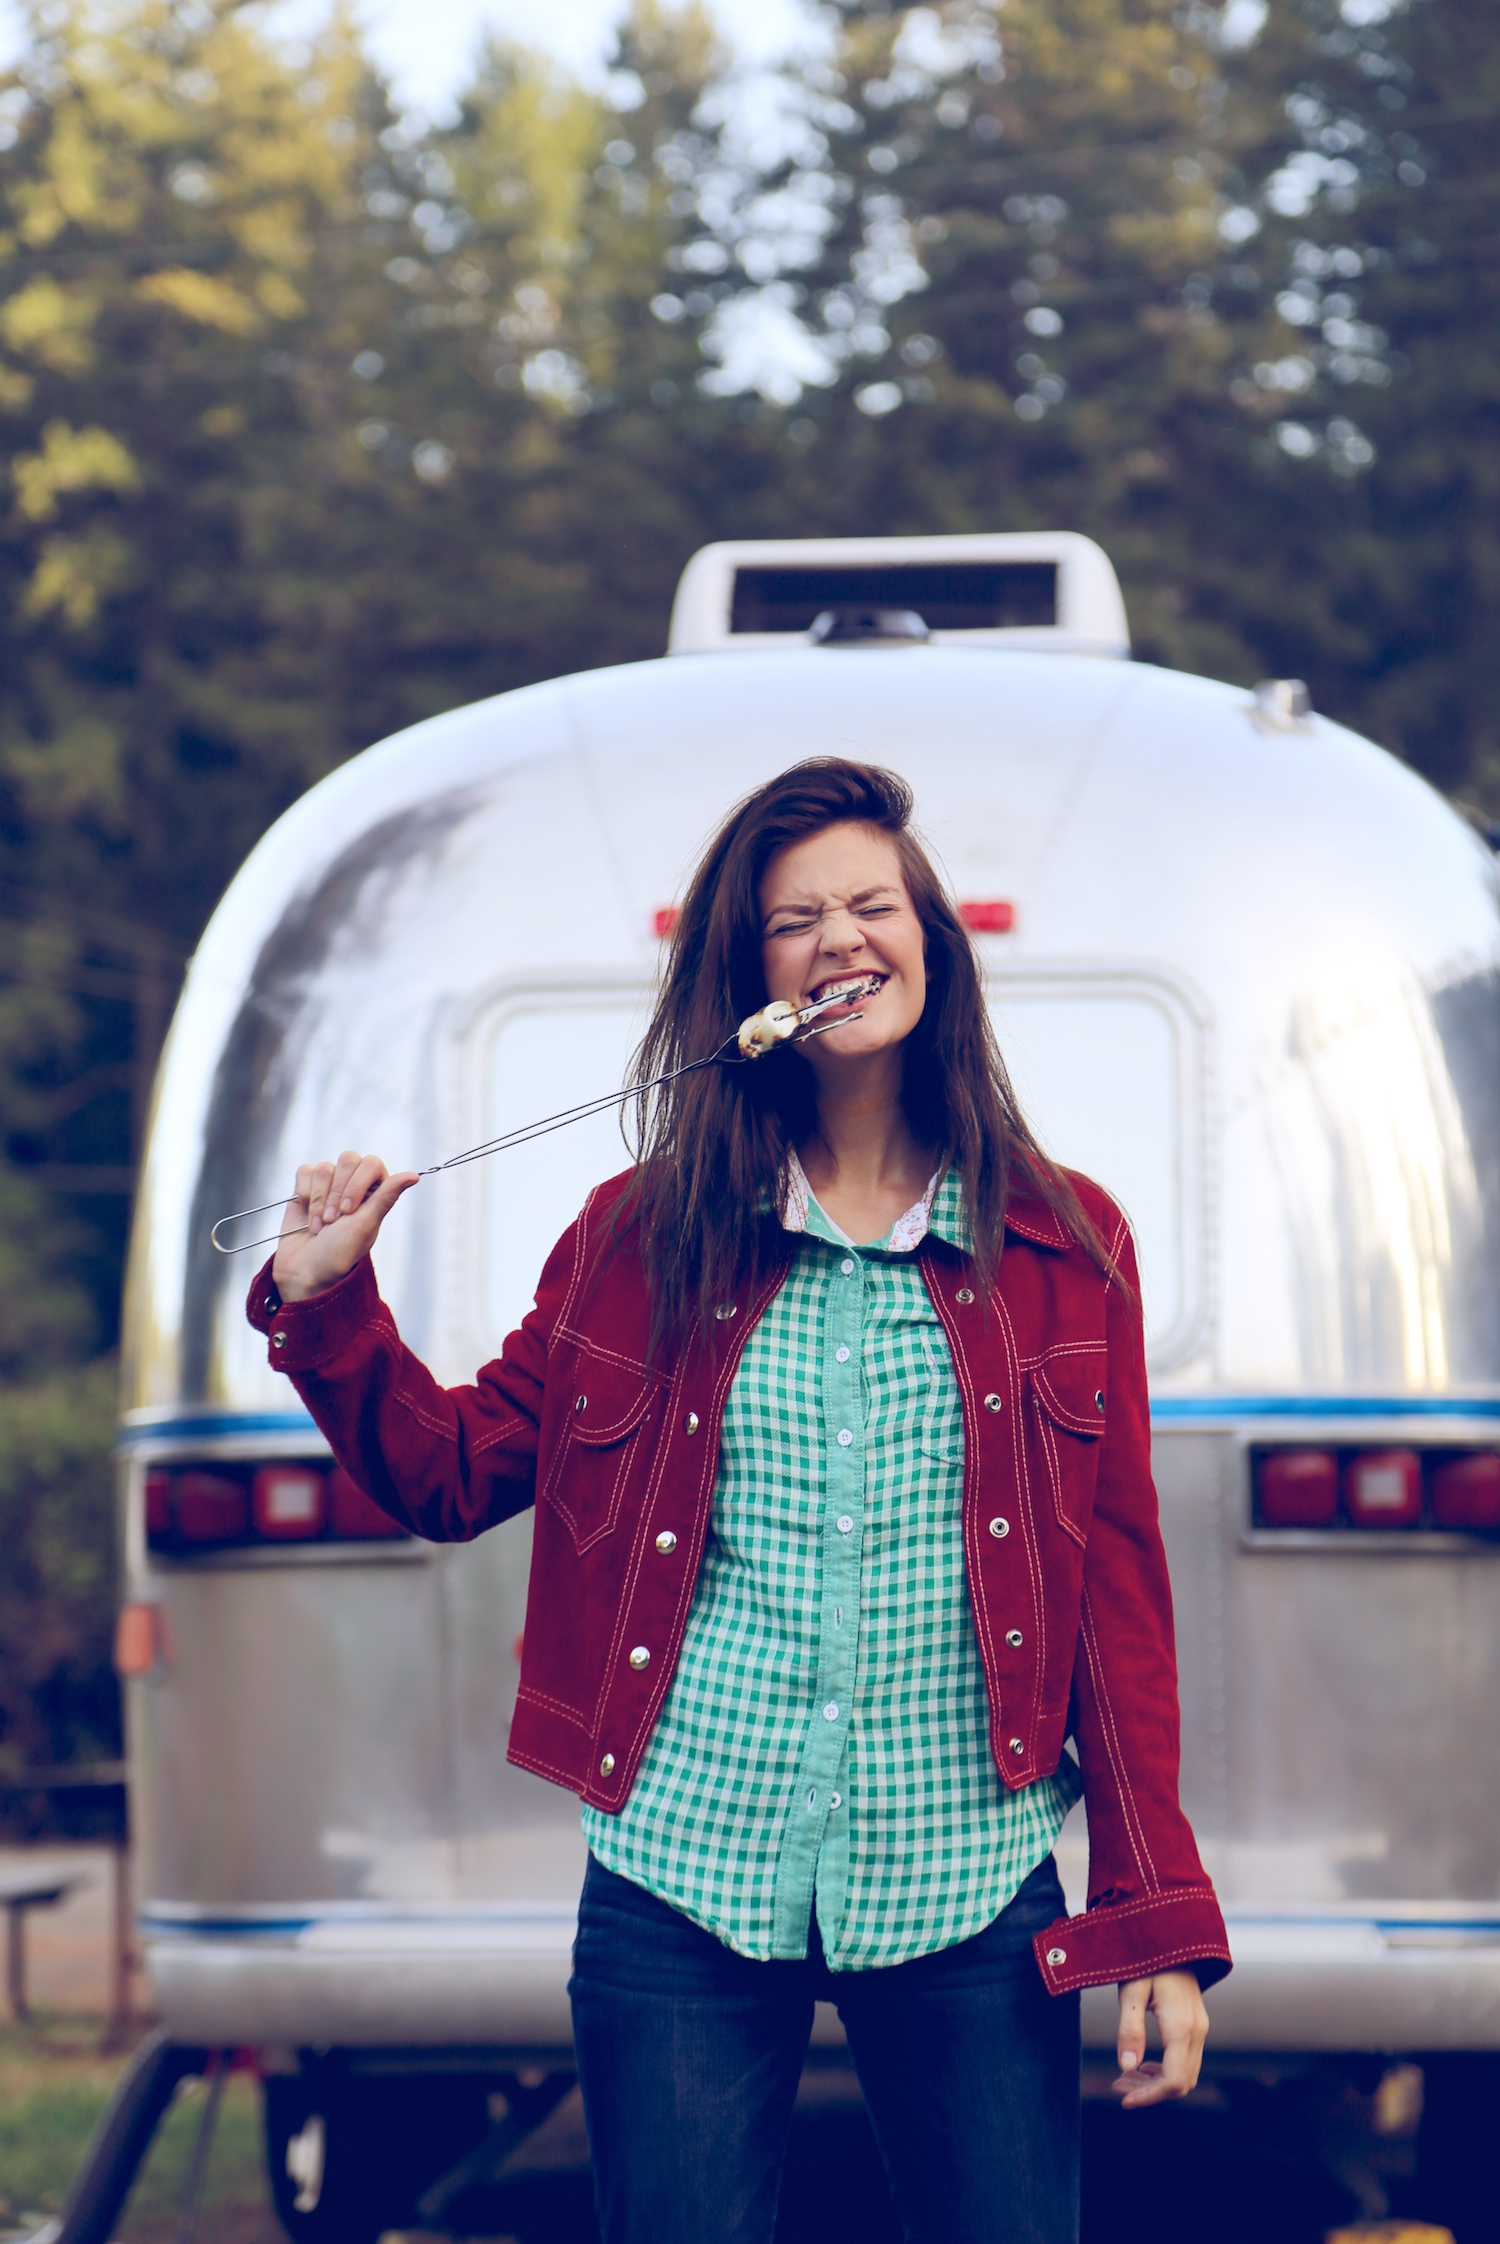 airstream,camping,clamping,editorial,redwoods,national park, california,northern coast,emerald triangle,amber flowers, heather van gaale, lifestyle, camping editorial, brunette,lifestyle,airstream,millennial,